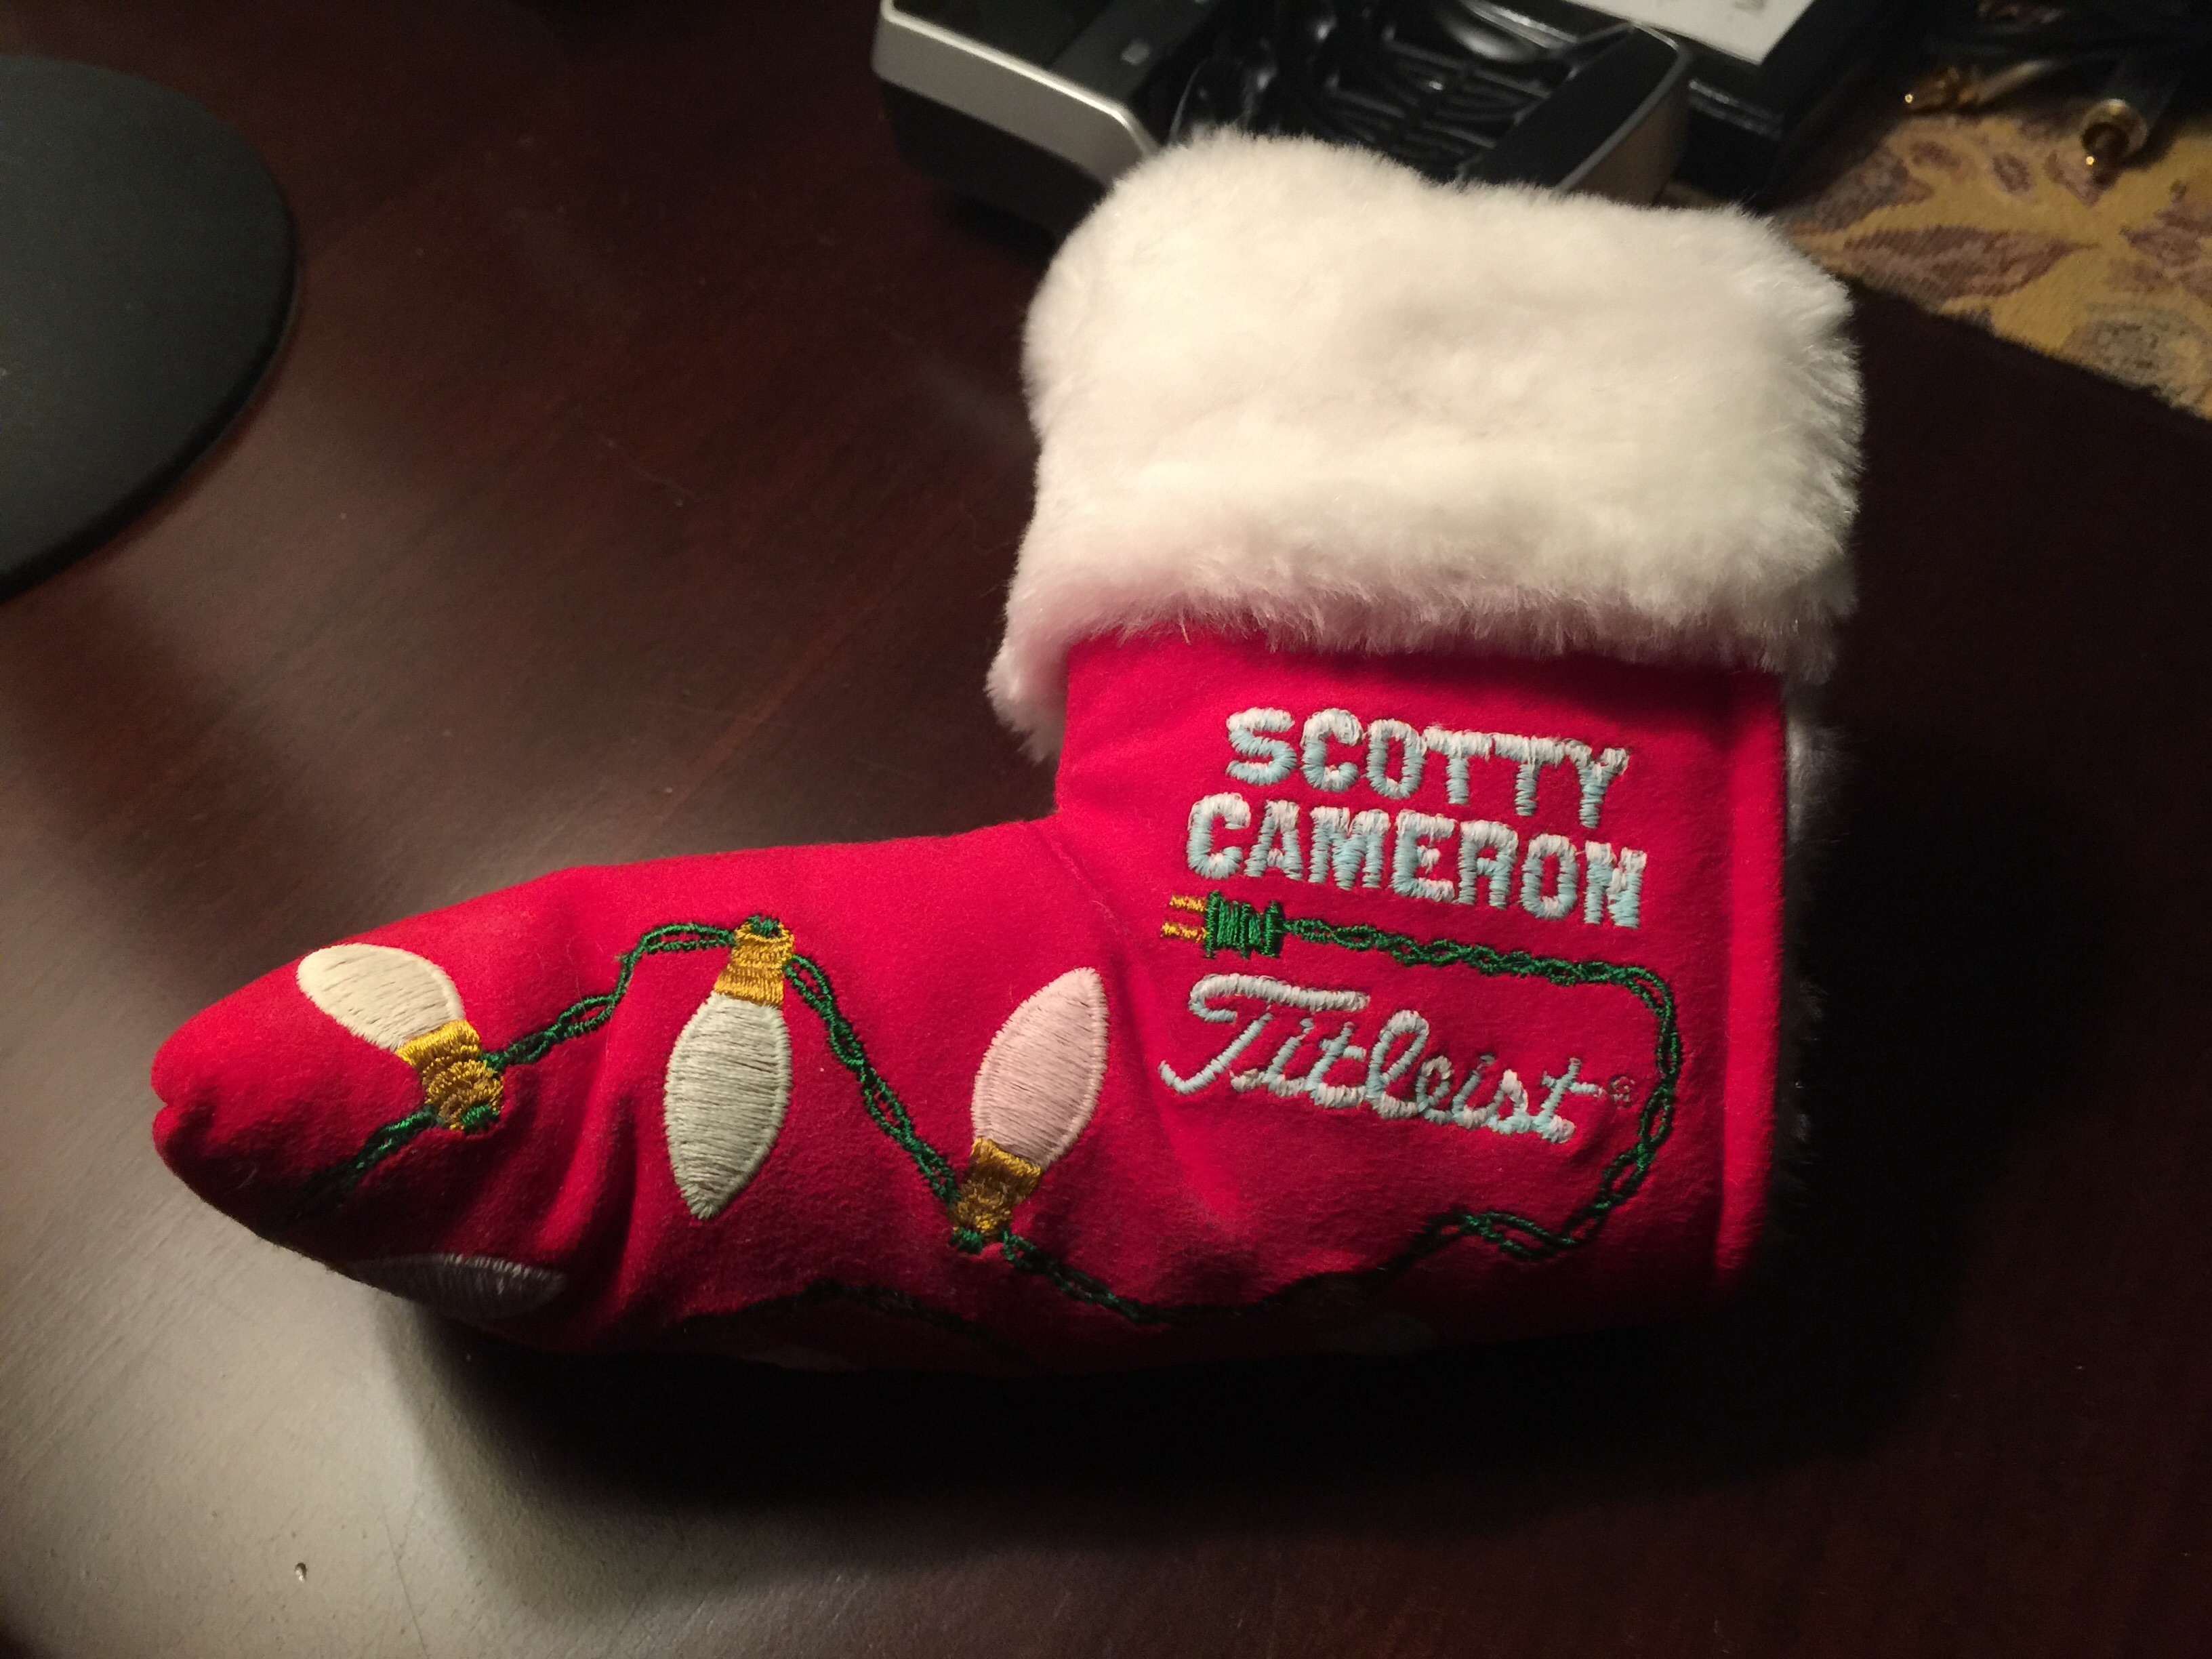 Favorite Scotty Cameron Headcover - Scotty Cameron Putters